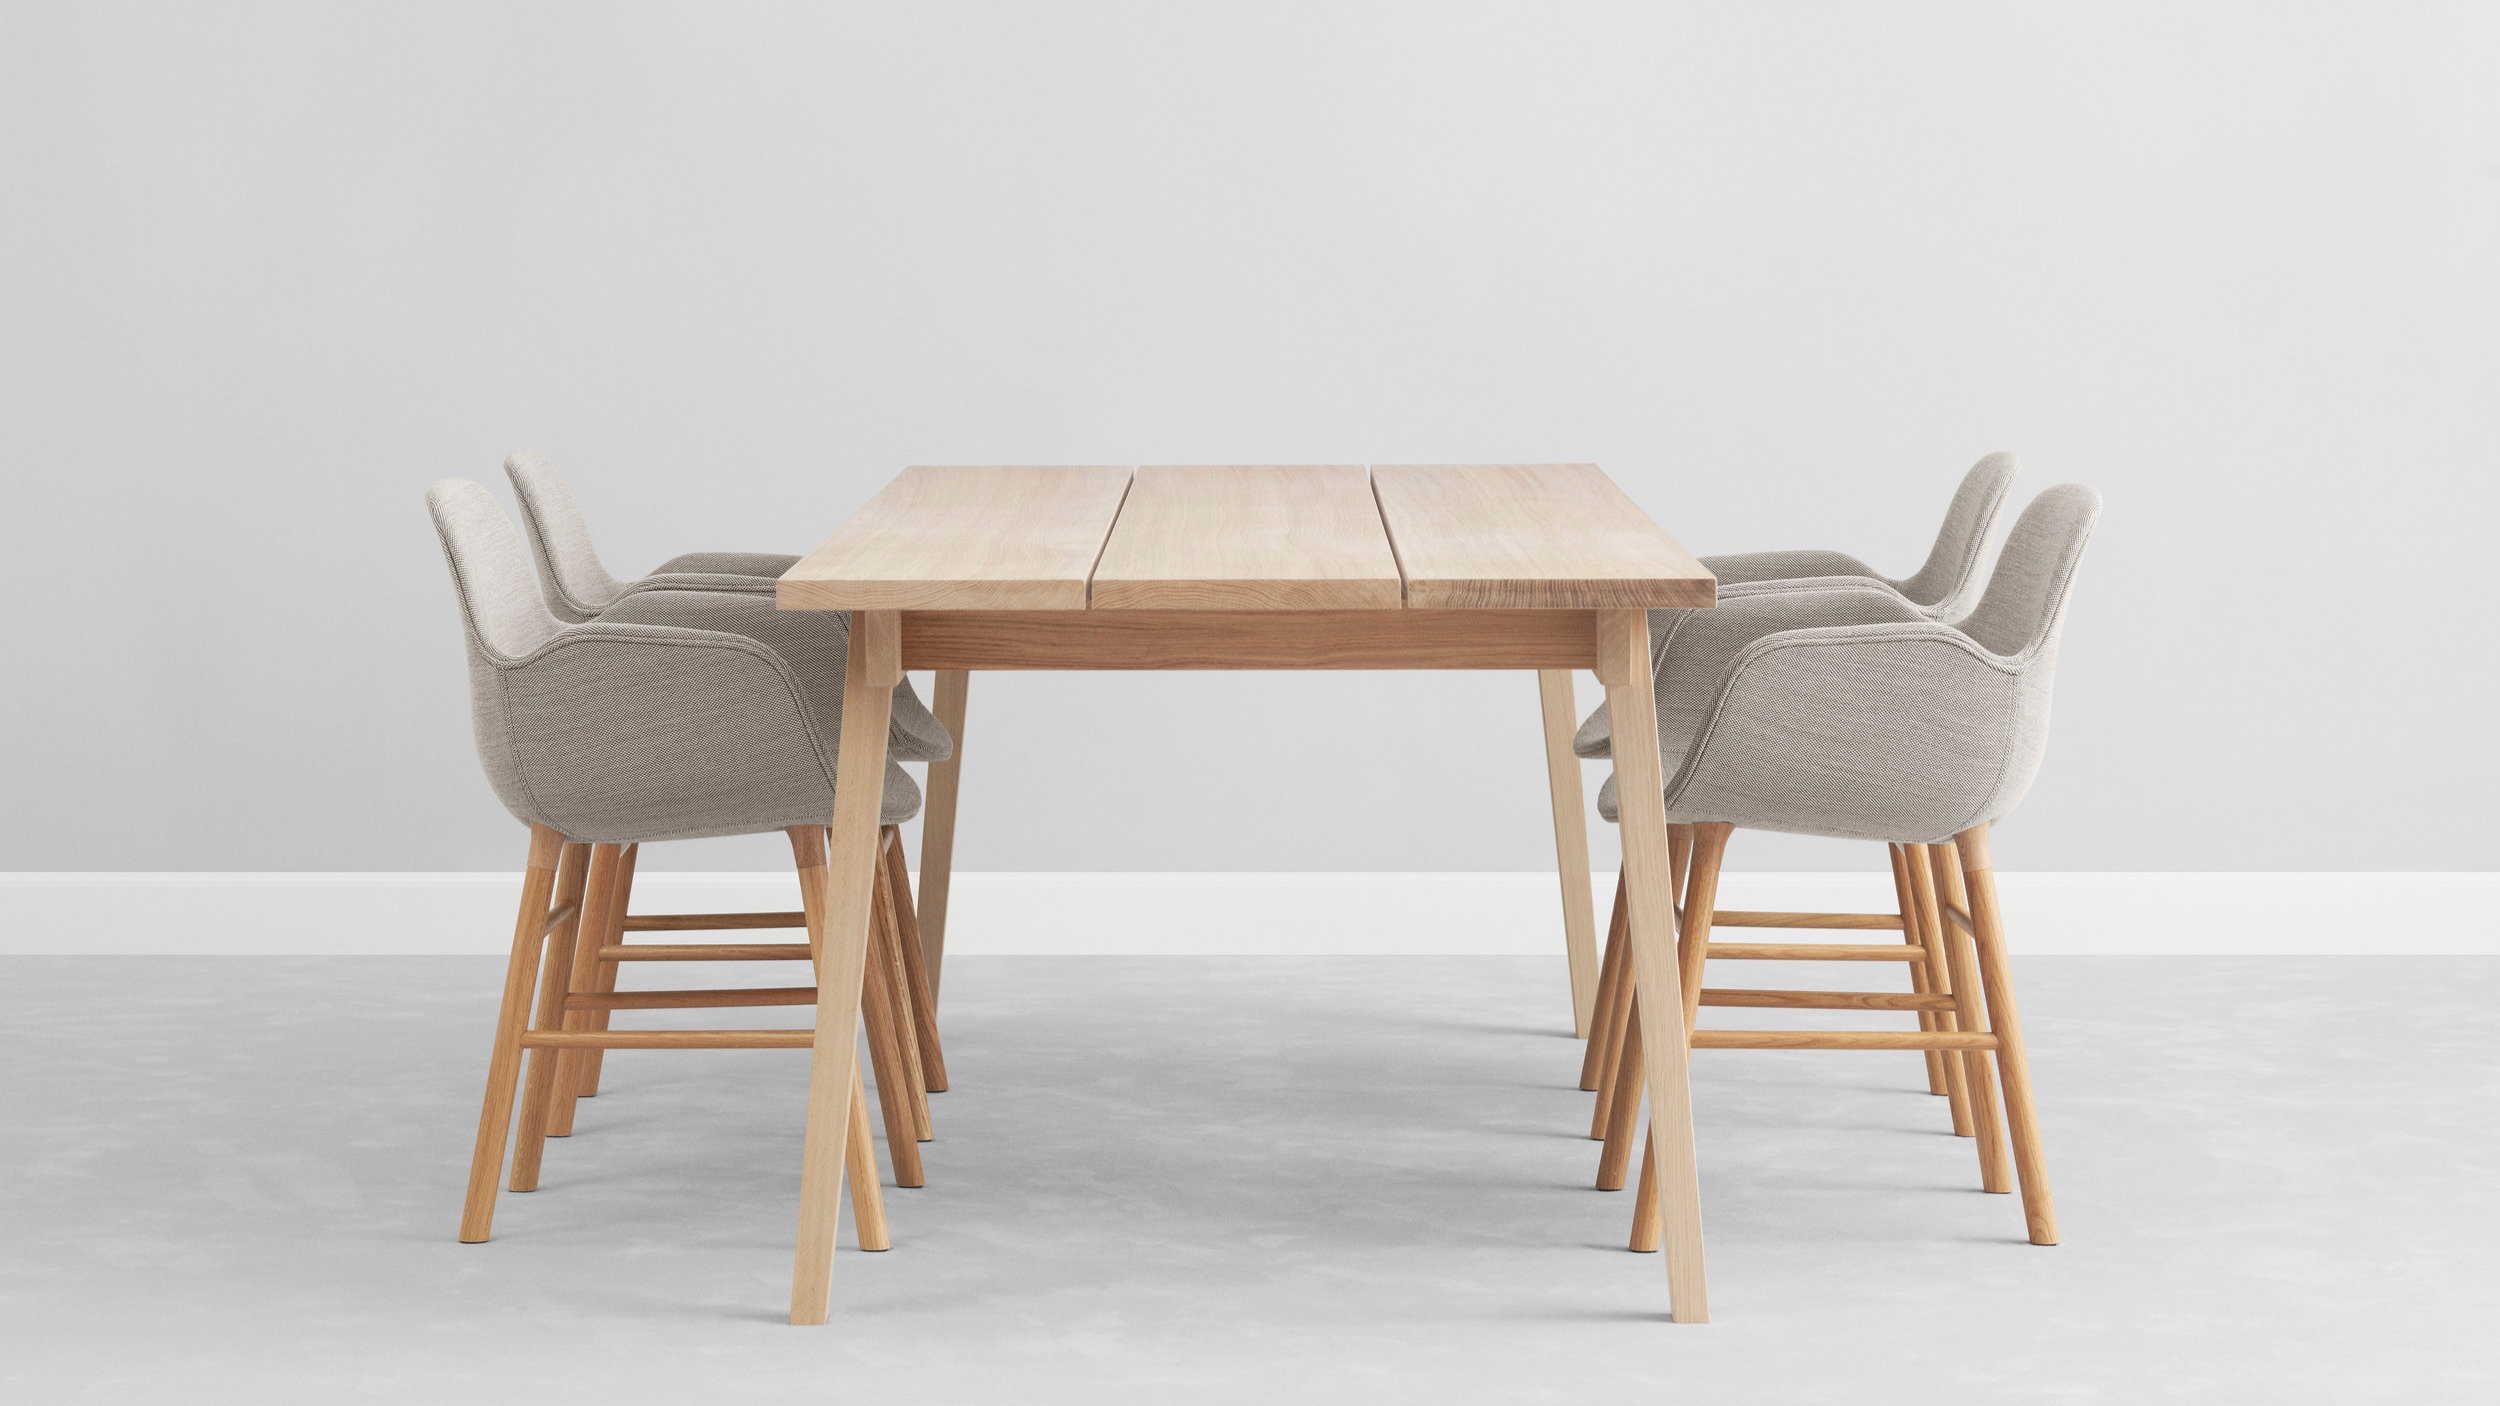 2016_Normann_Catalogue_Furniture_33.jpg